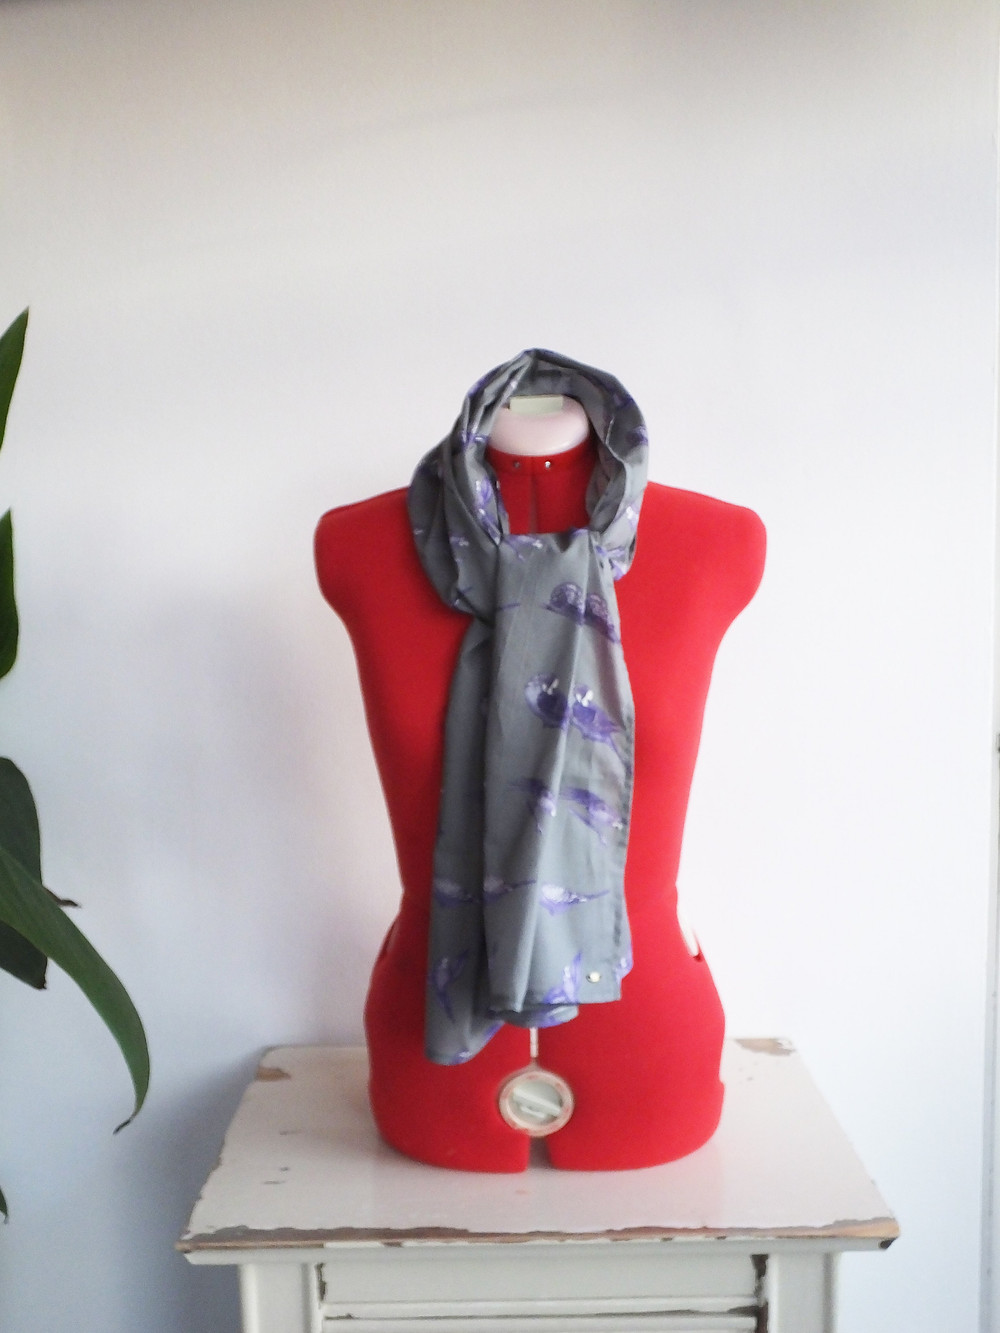 budgie gift - grey parakeet scarf from Jenny K Home